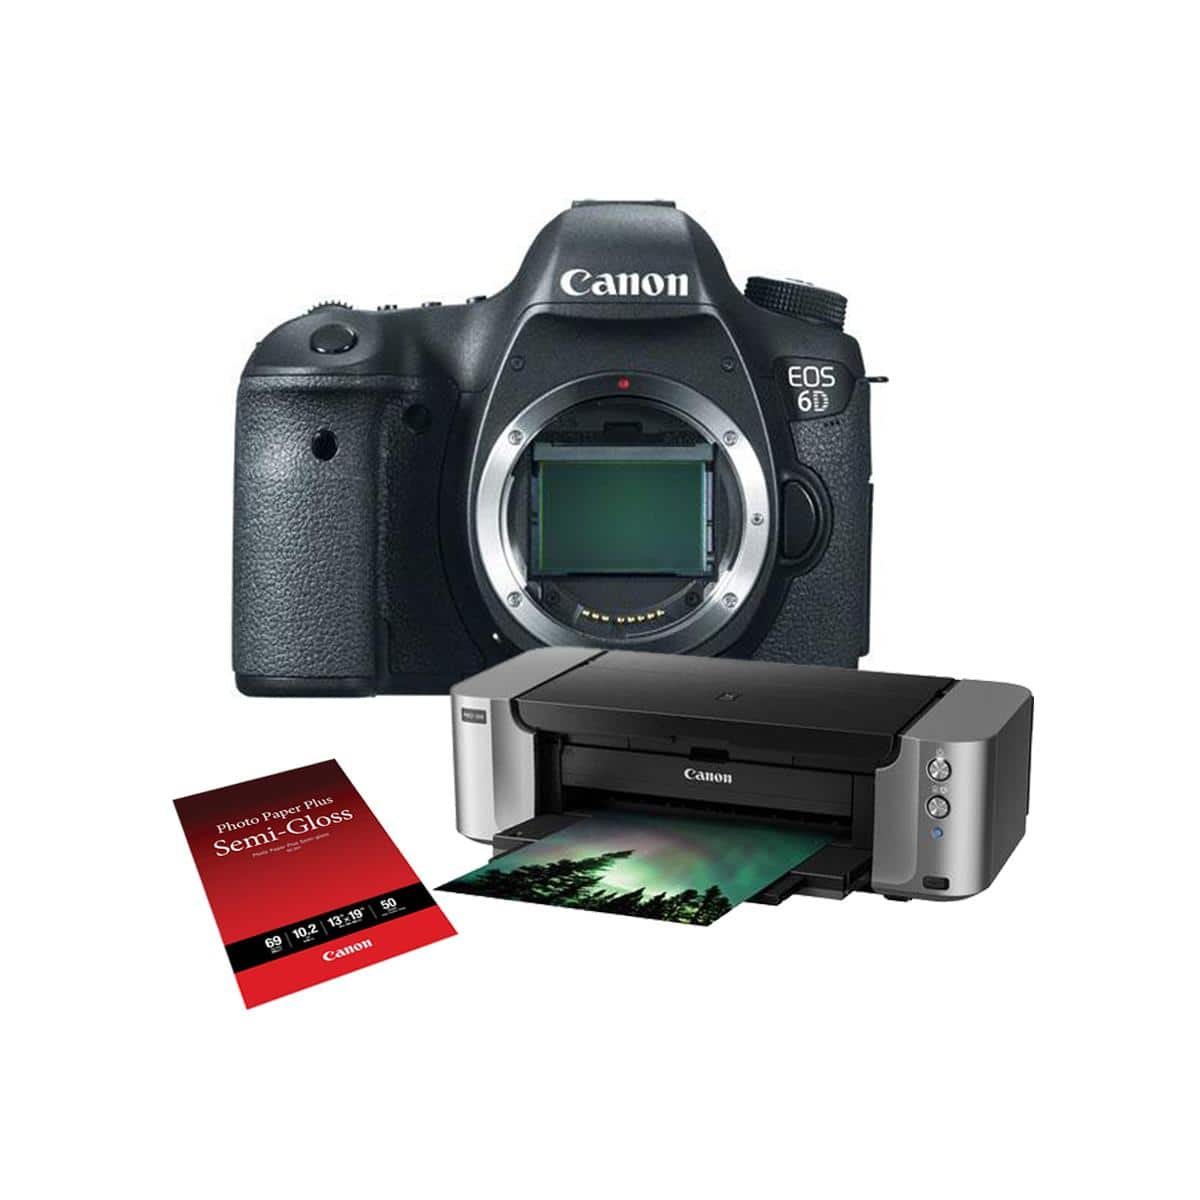 Canon 6D (body) + Speedlite 600EX Flash + Pro-100 Printer & More $1405 + free shipping after $350 rebate